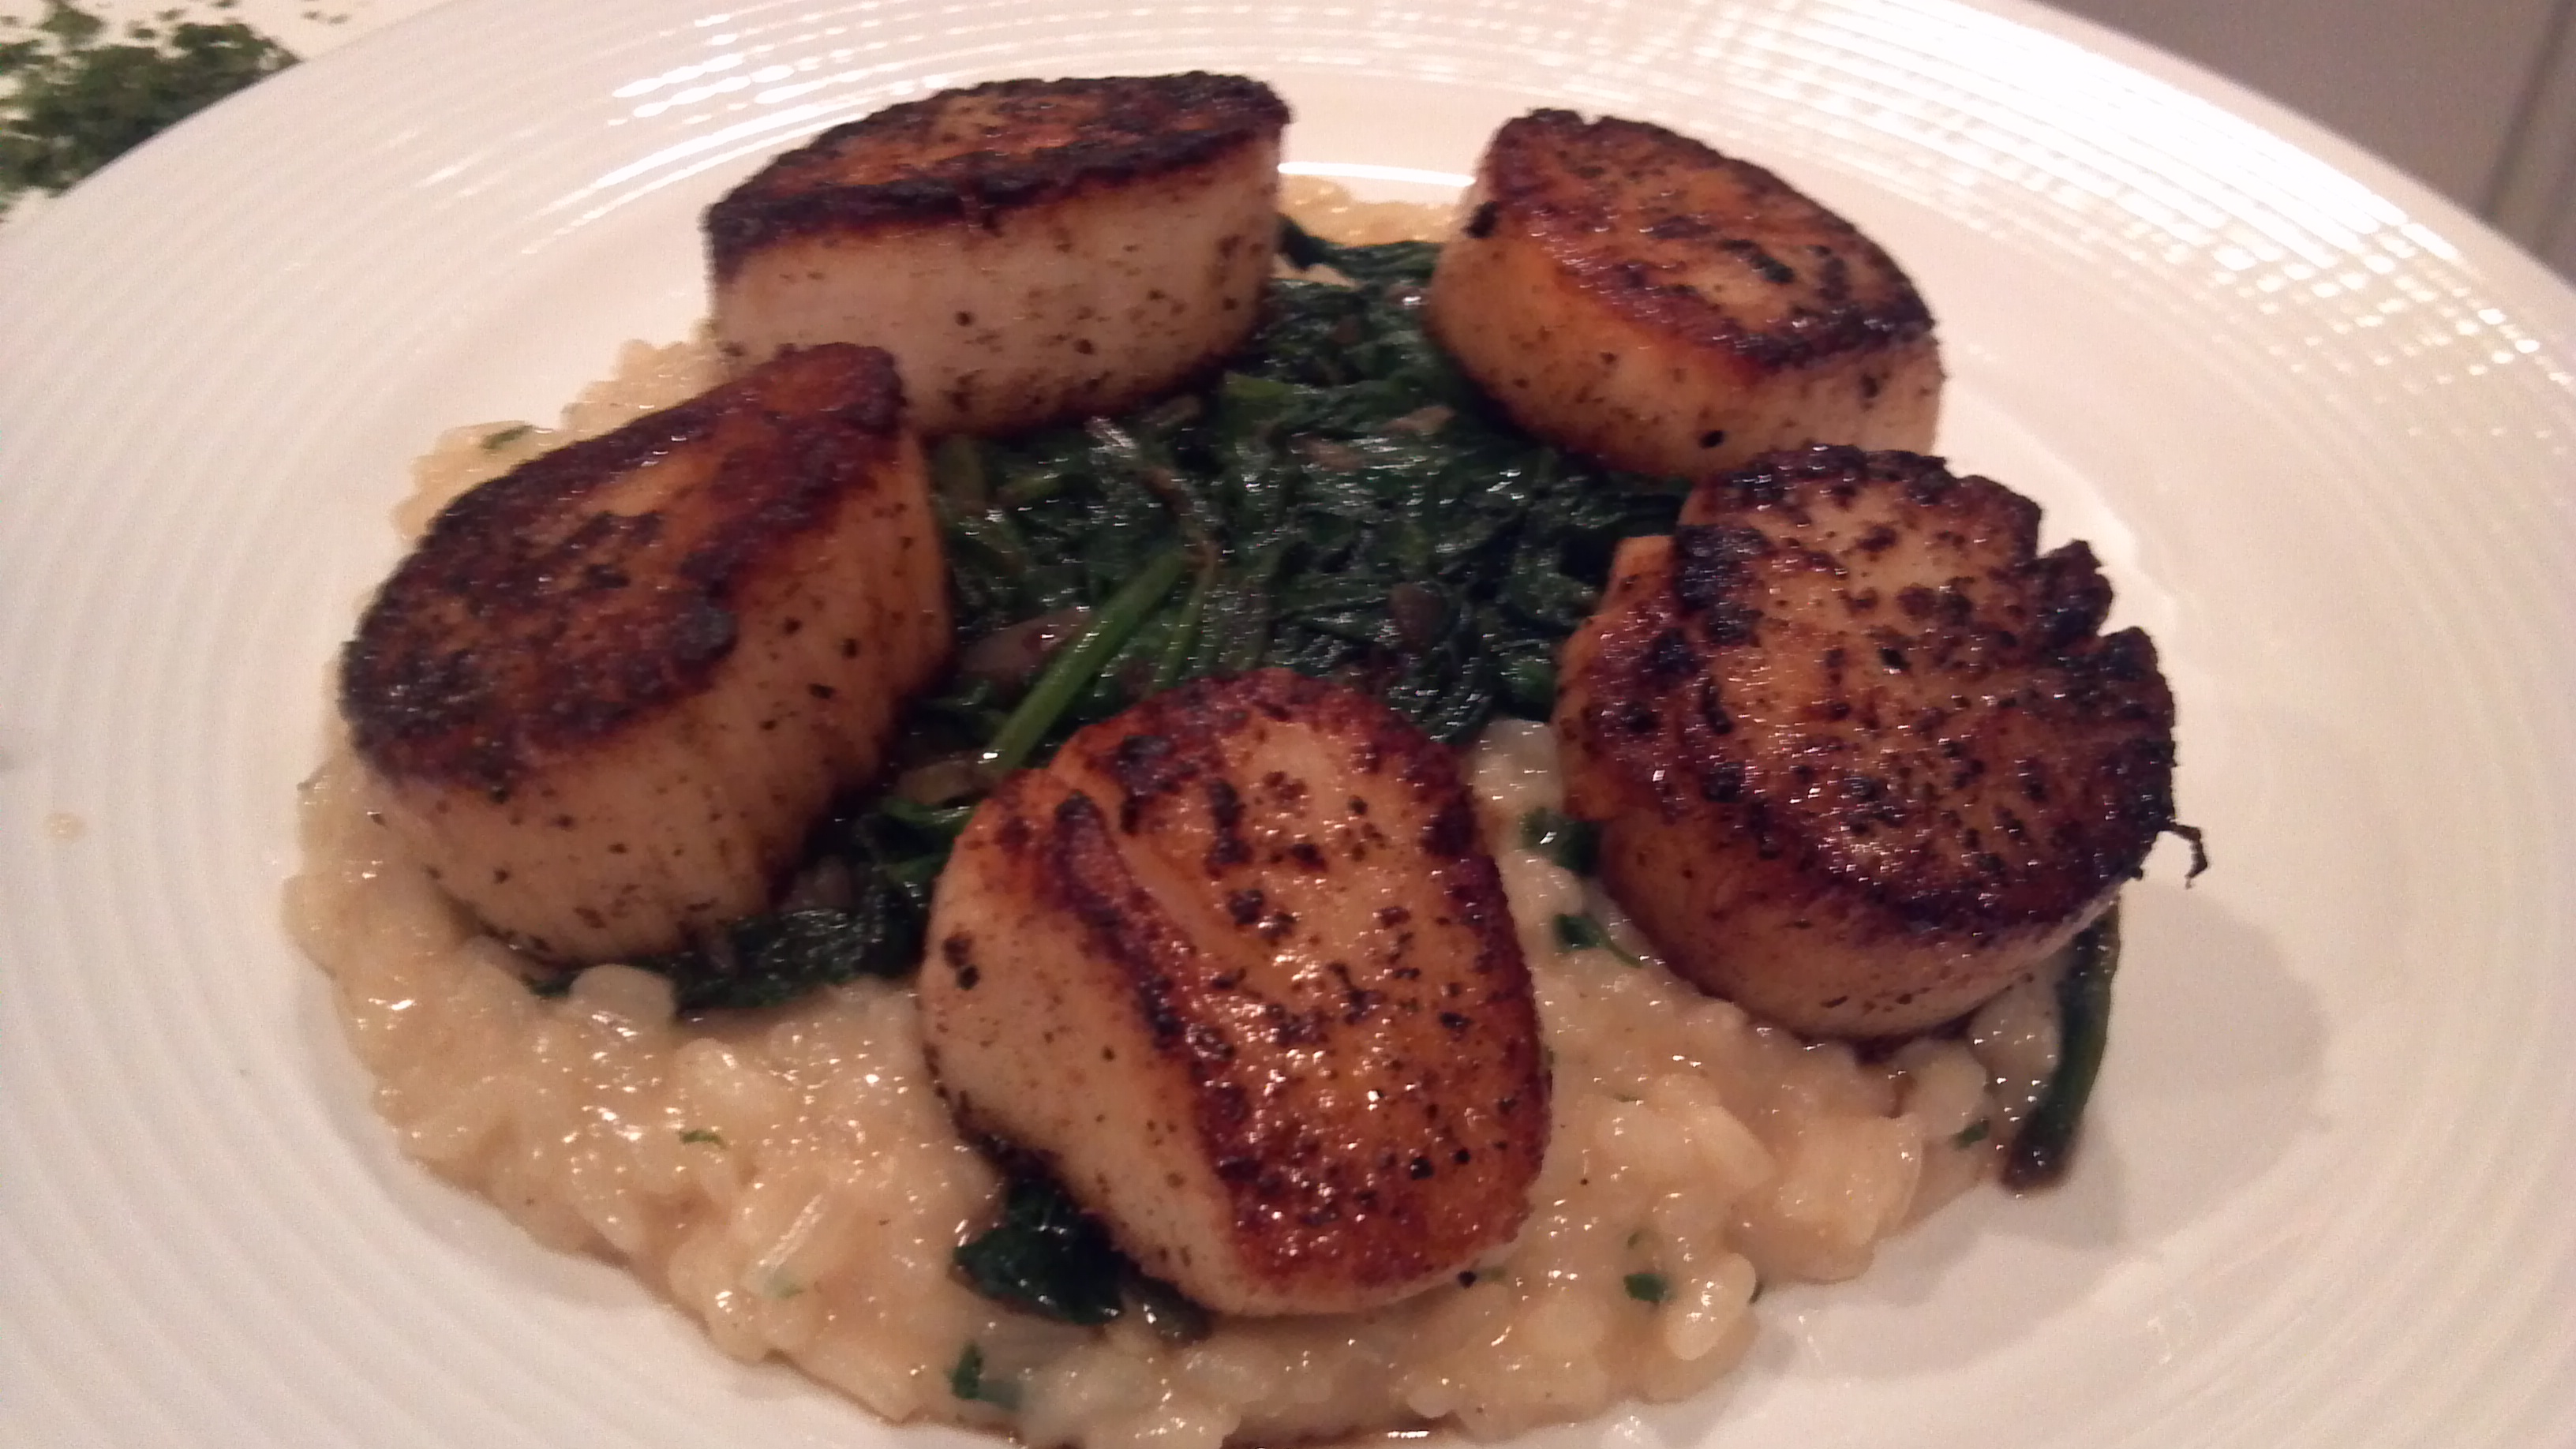 Pan Seared Sea Scallops with Parmesan Risotto and Wilted Spinach